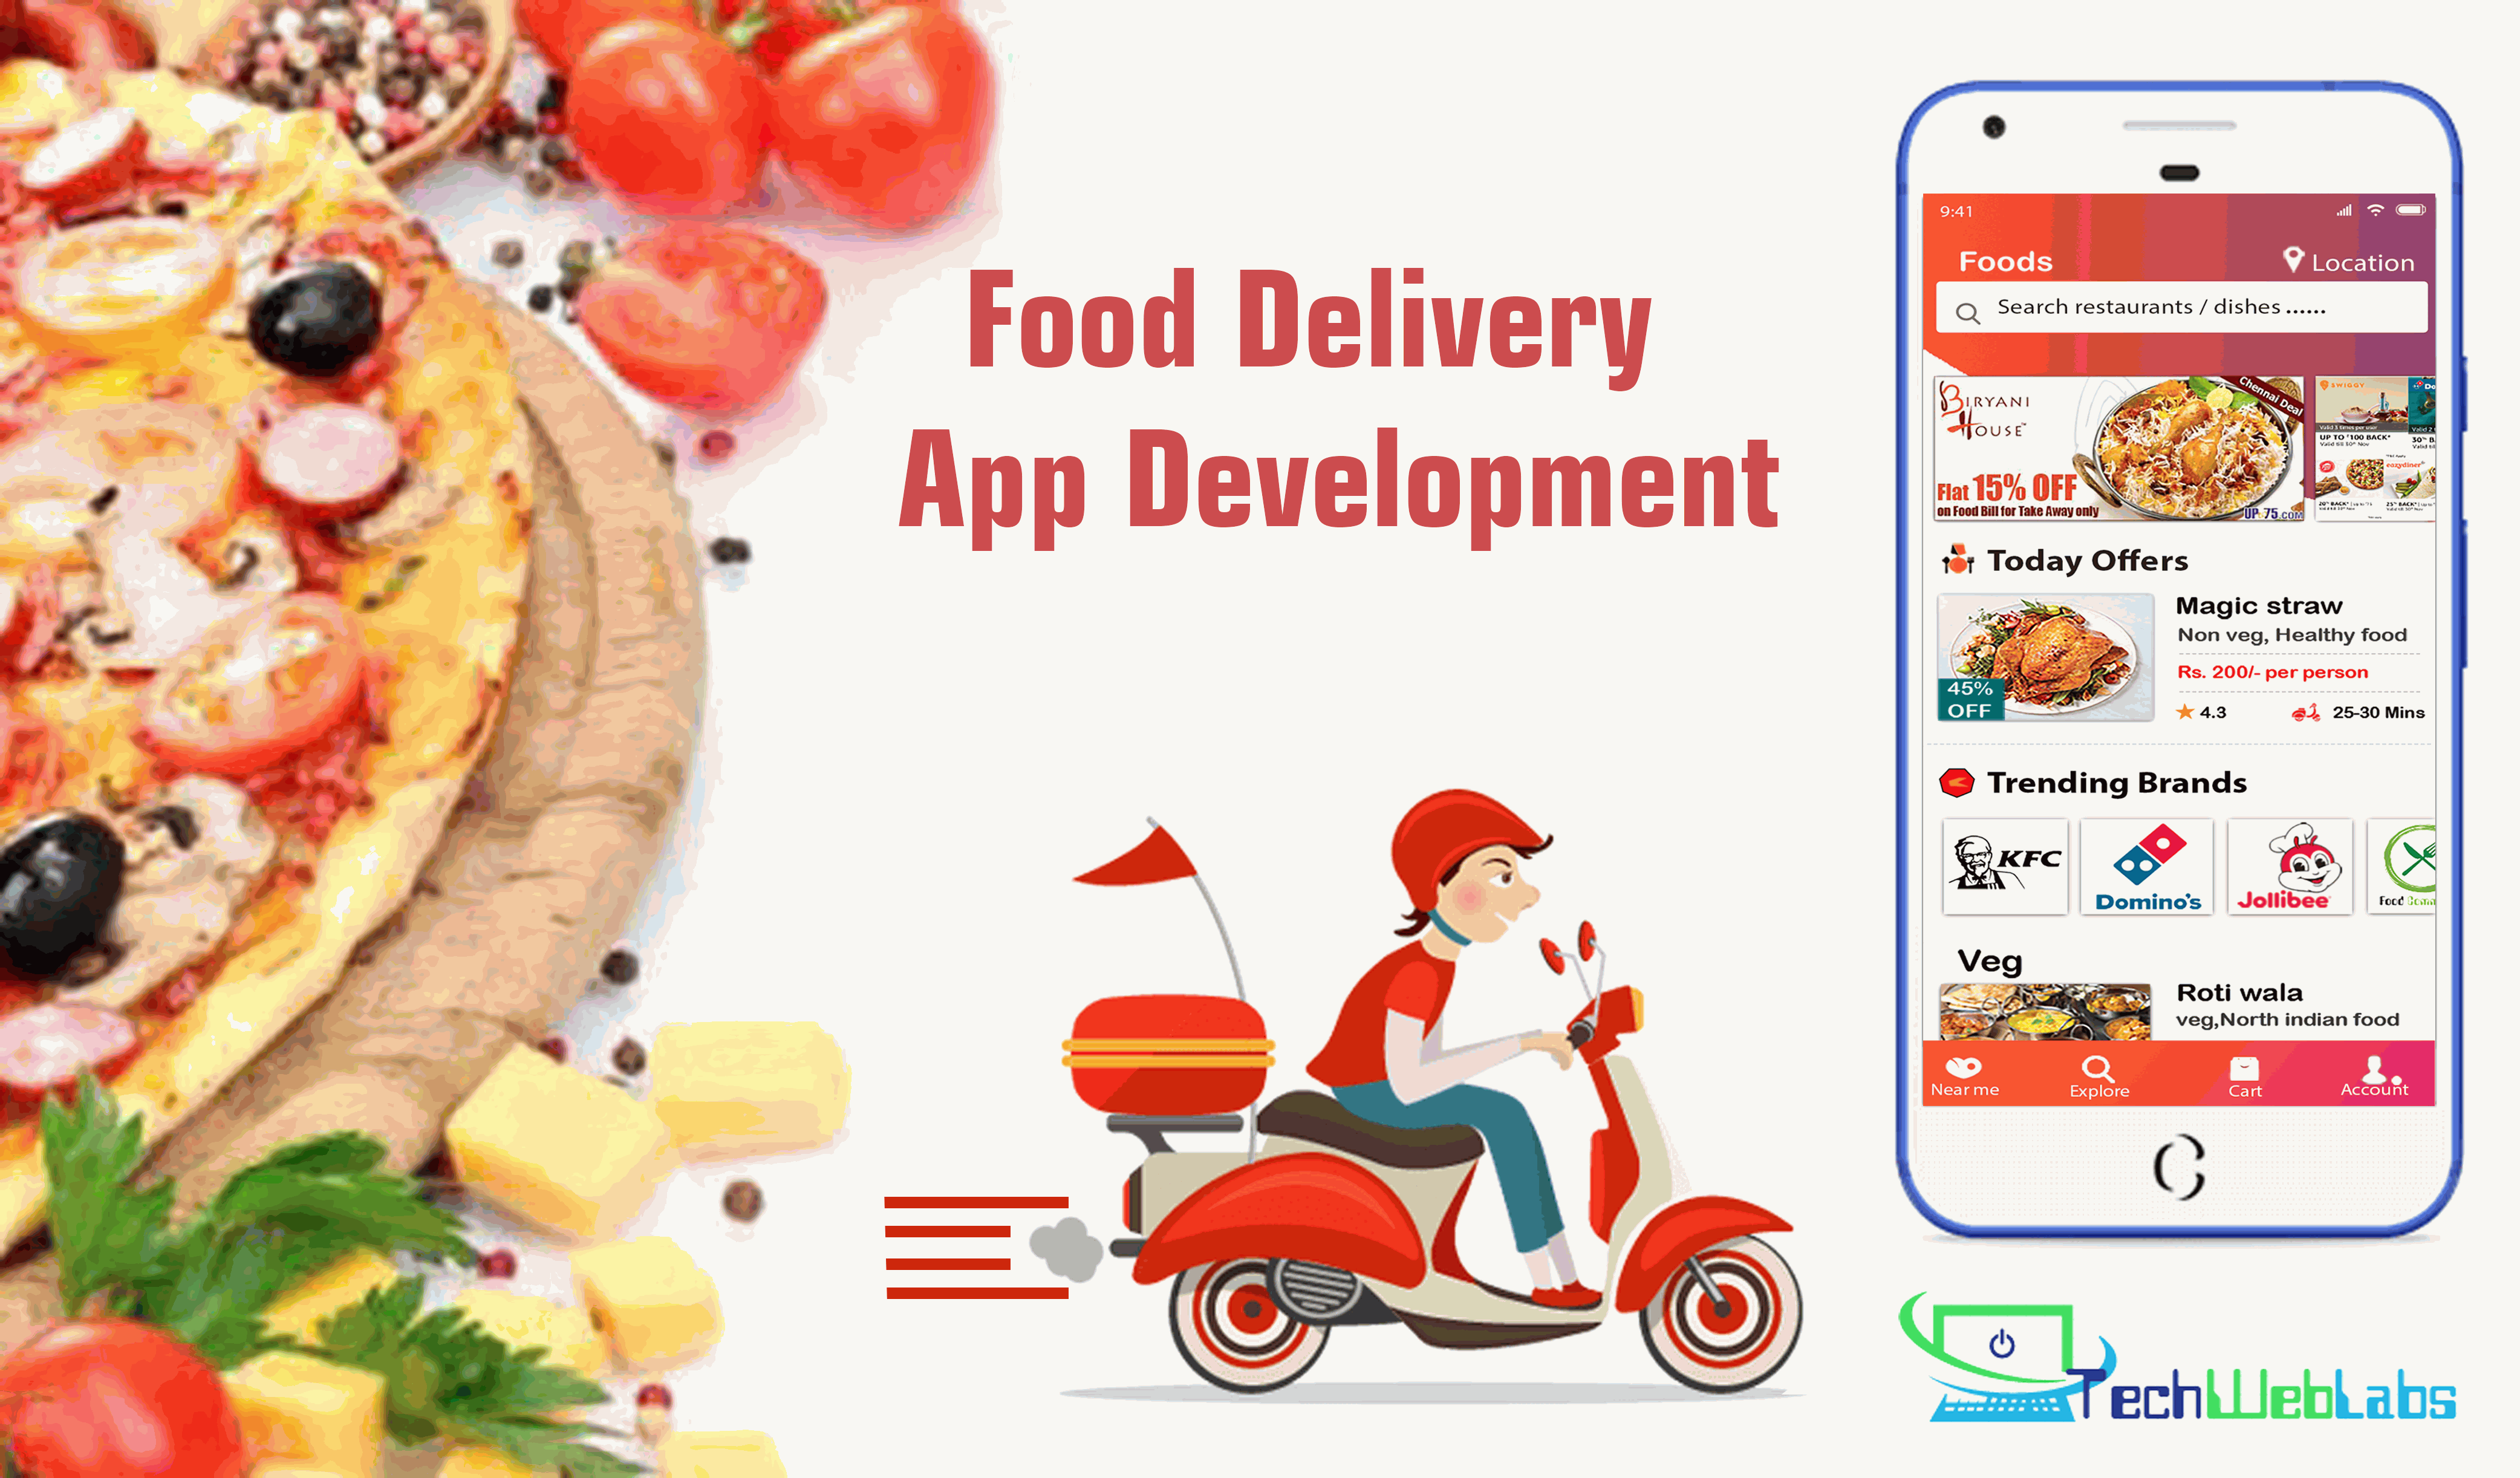 Food delivery app development solutions - Techweblabs